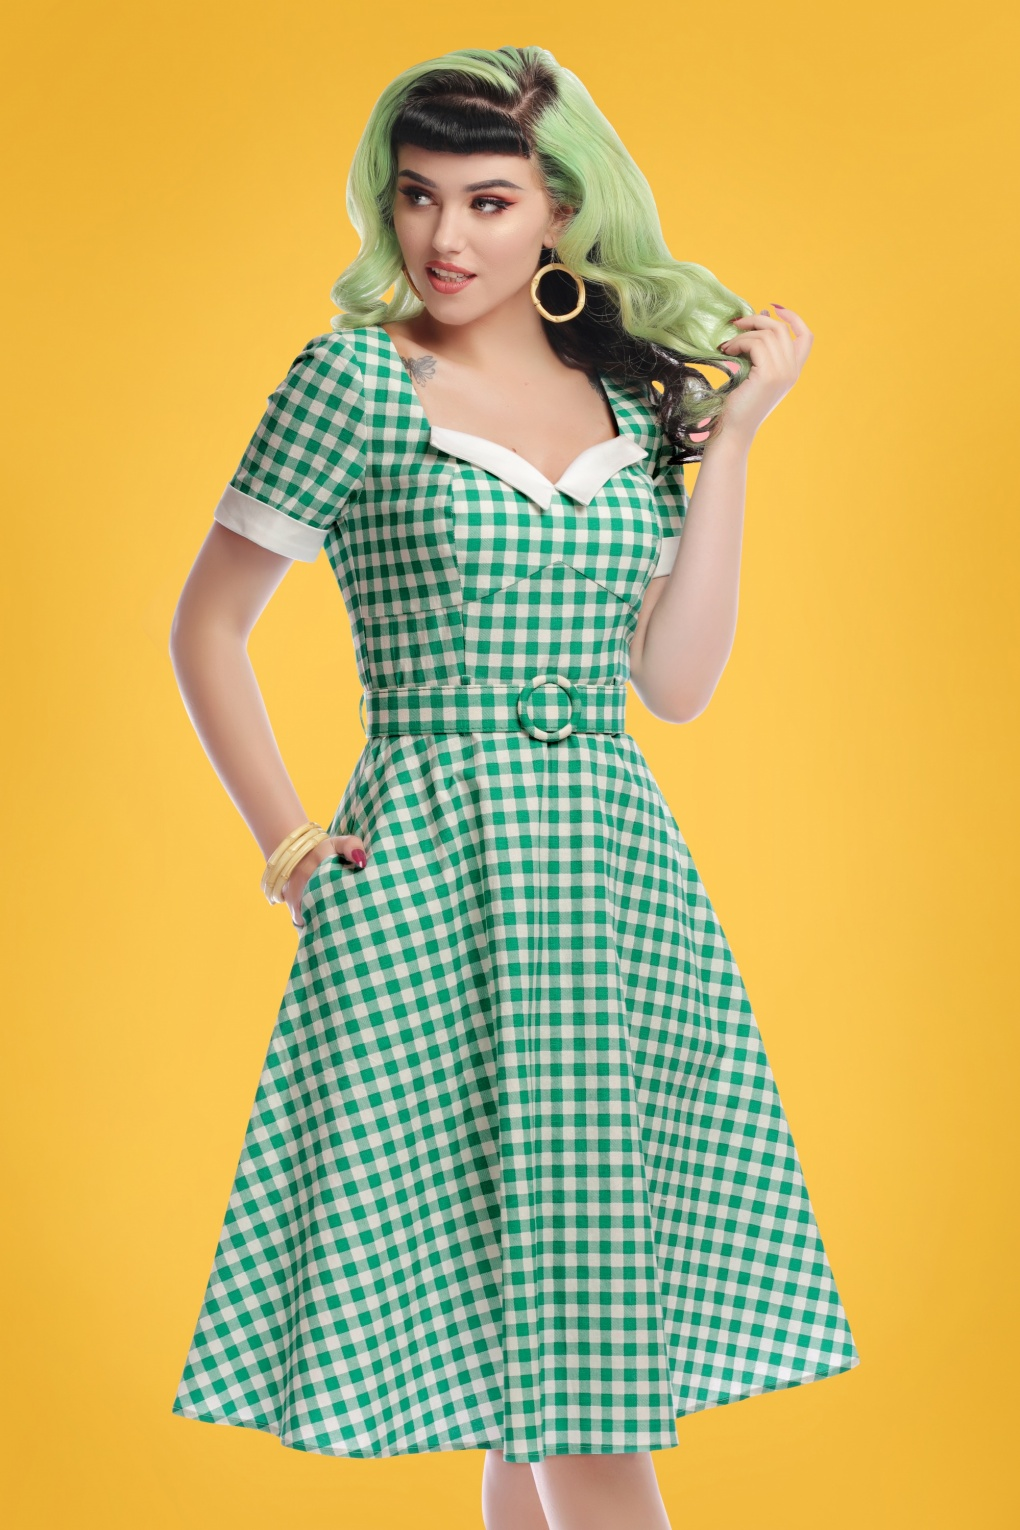 Fifties Dresses : 1950s Style Swing to Wiggle Dresses 50s Roberta Gingham Swing Dress in Green �62.12 AT vintagedancer.com